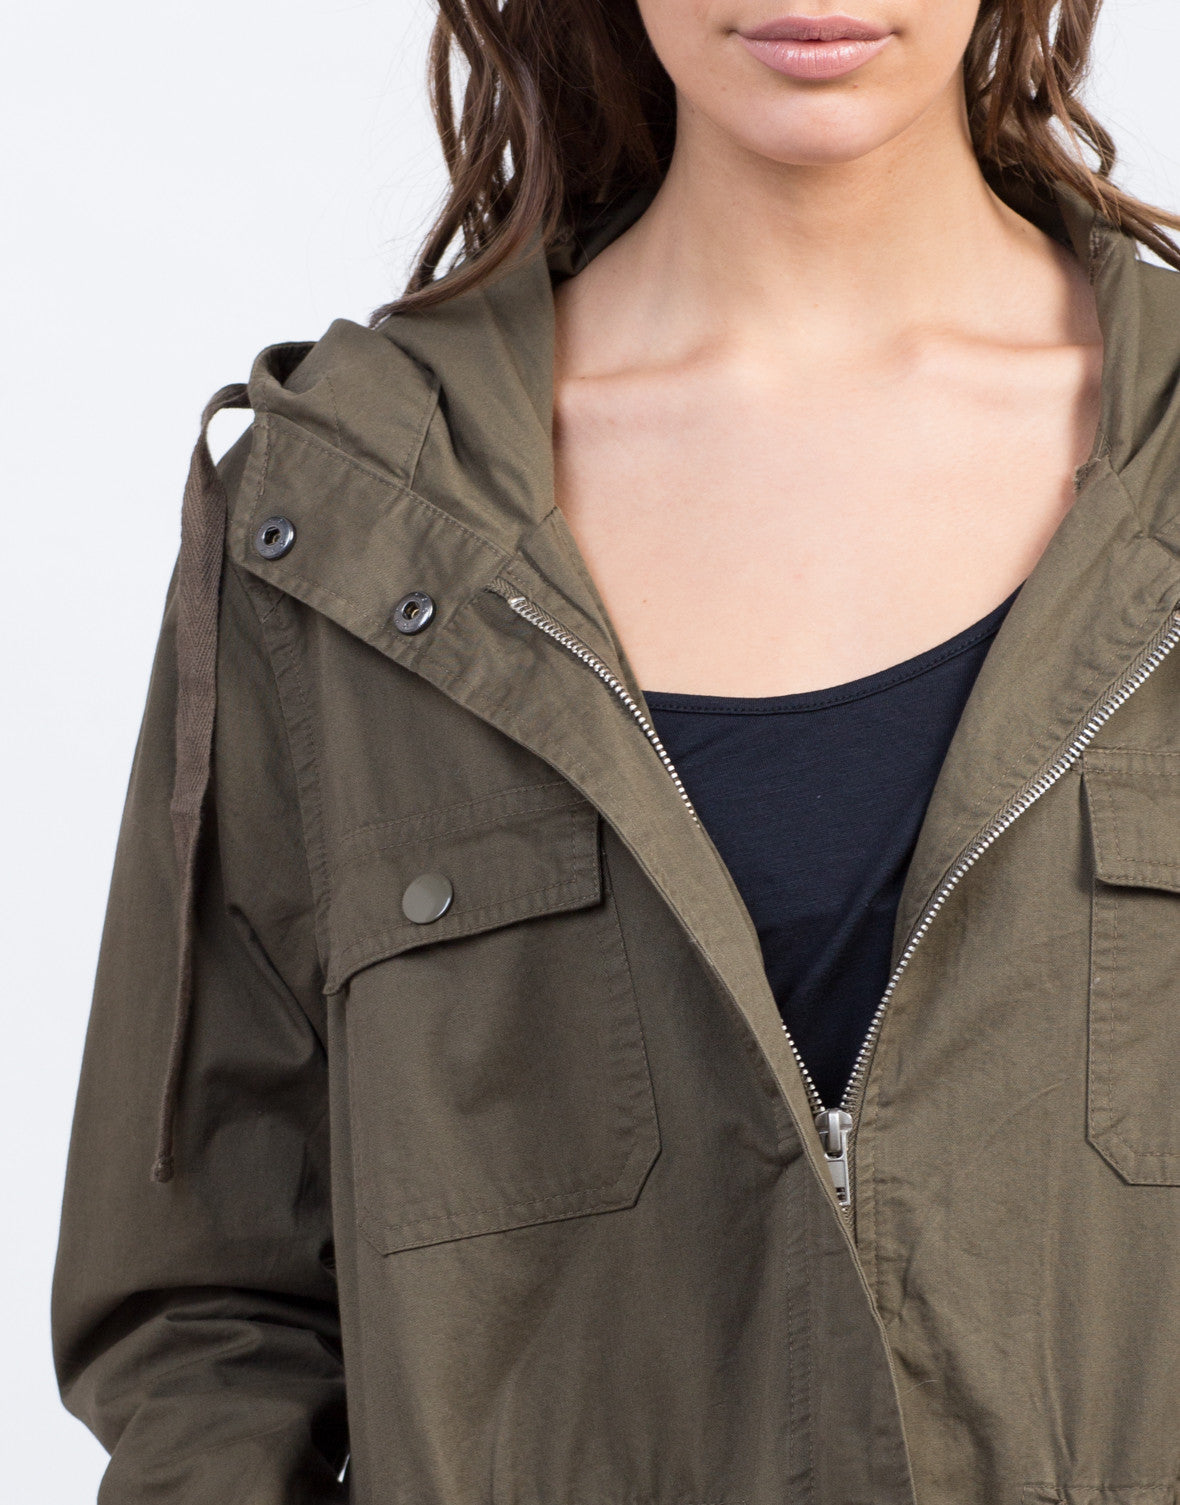 Detail of Army Anorak